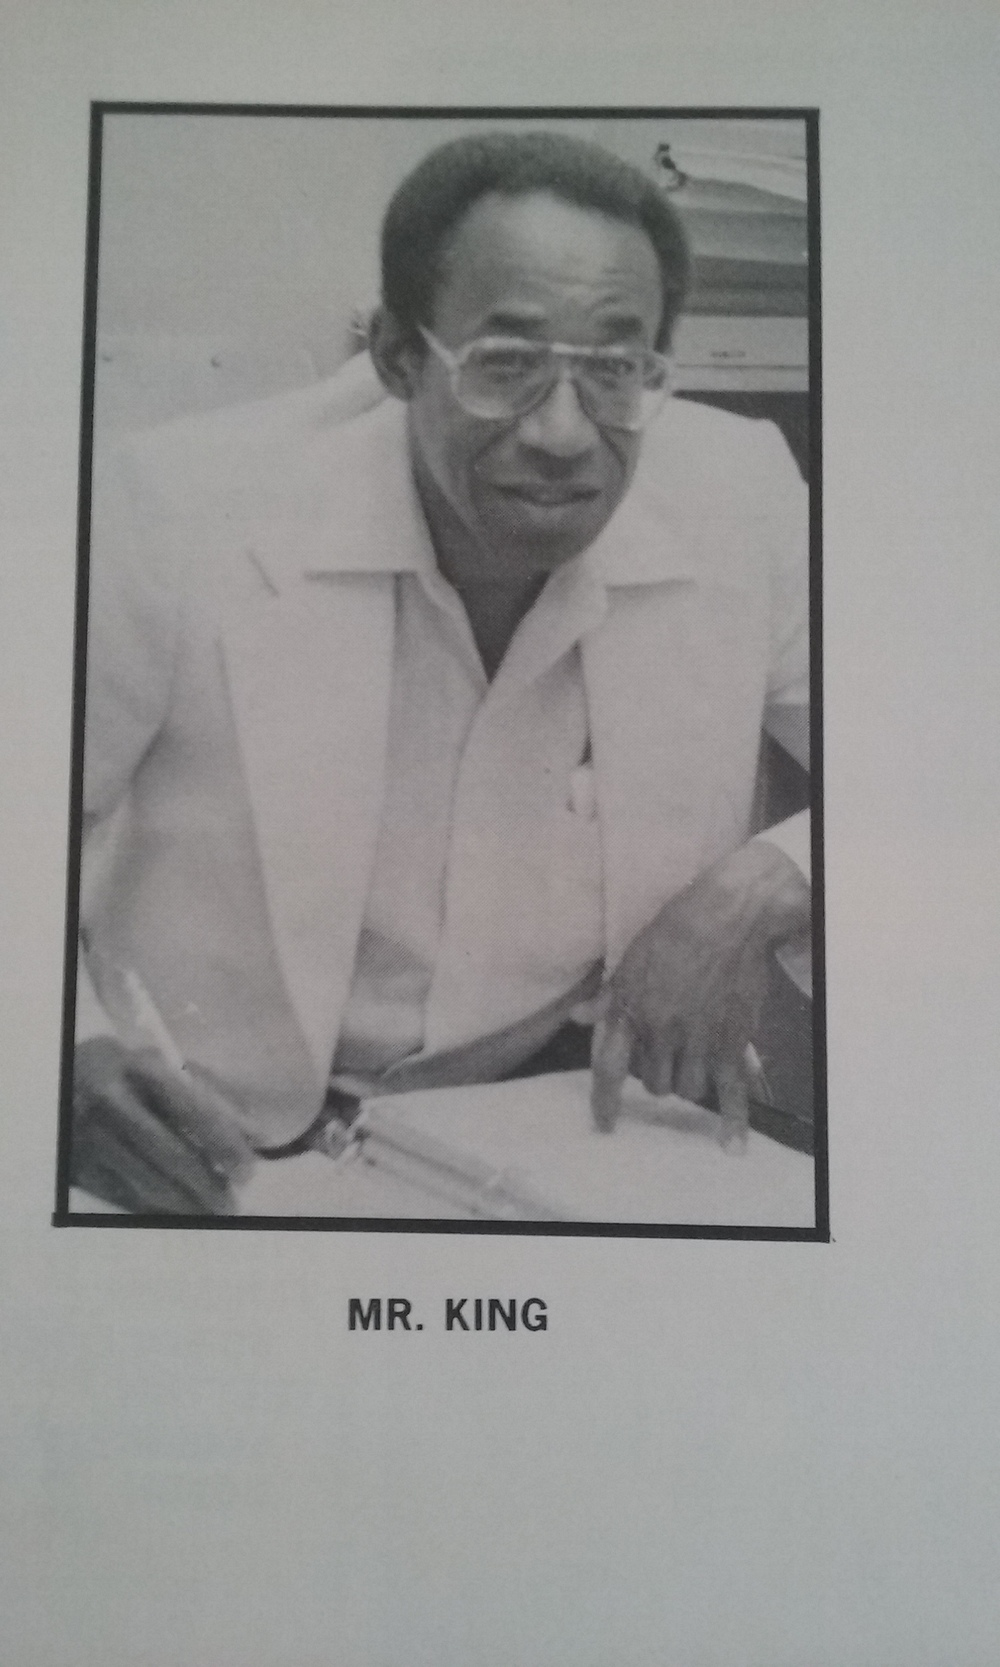 Without Mr. King, my counselor at Oceana High School there is no Bishop Chronicles. He was the first person to see a journalist in me and allow me to write about what I loved, Hip-Hop. I owe everything I have ever written and every speech I have ever given to him and Eazy E.